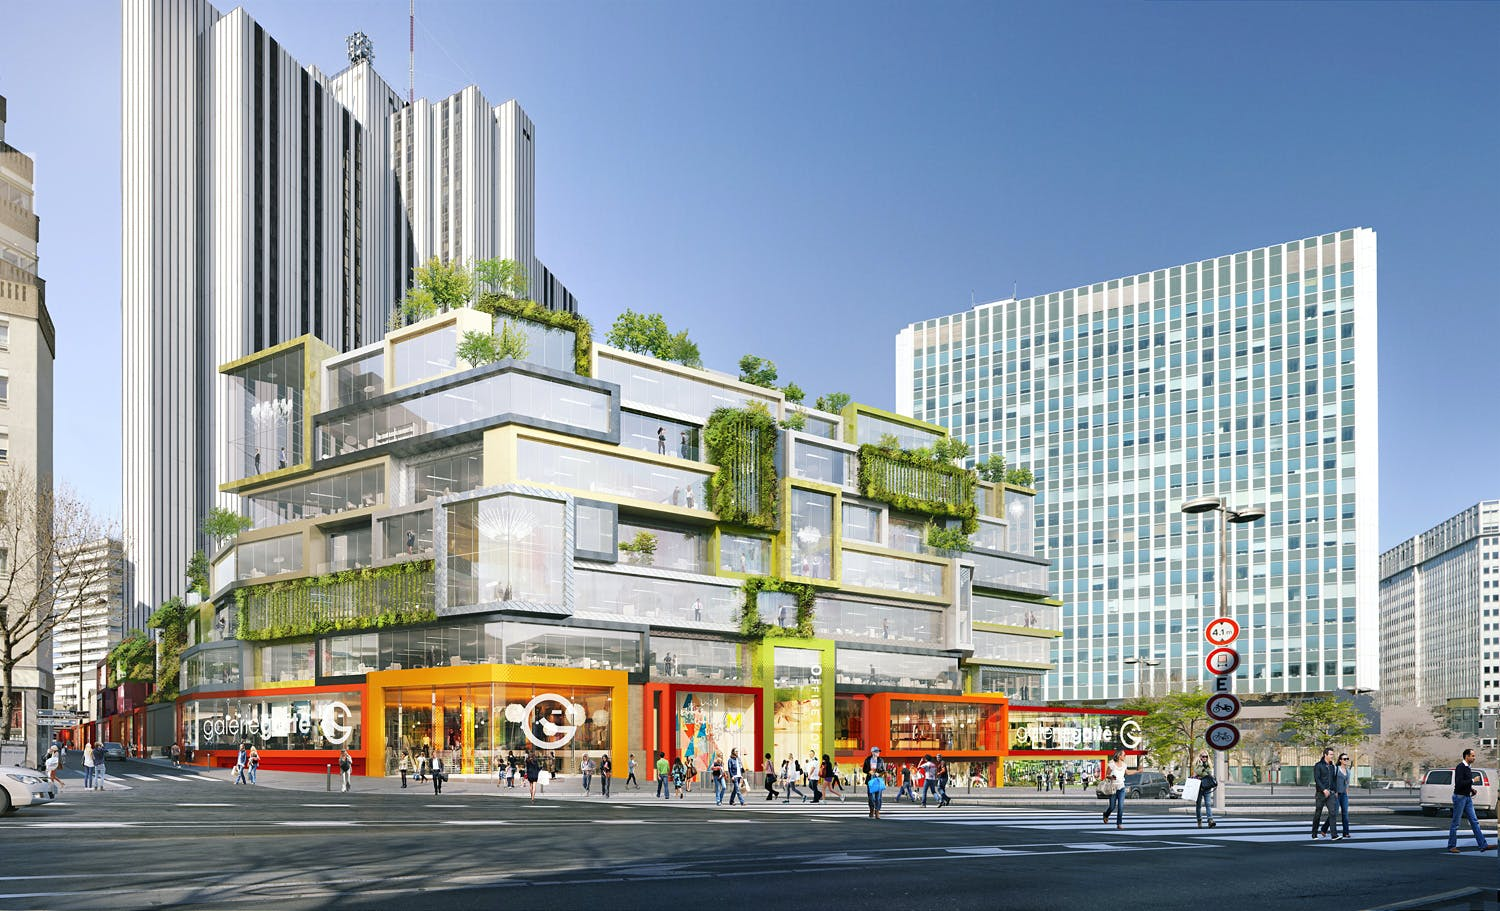 Mvrdv Approved To Redesign The 70s Vandamme Nord Block In